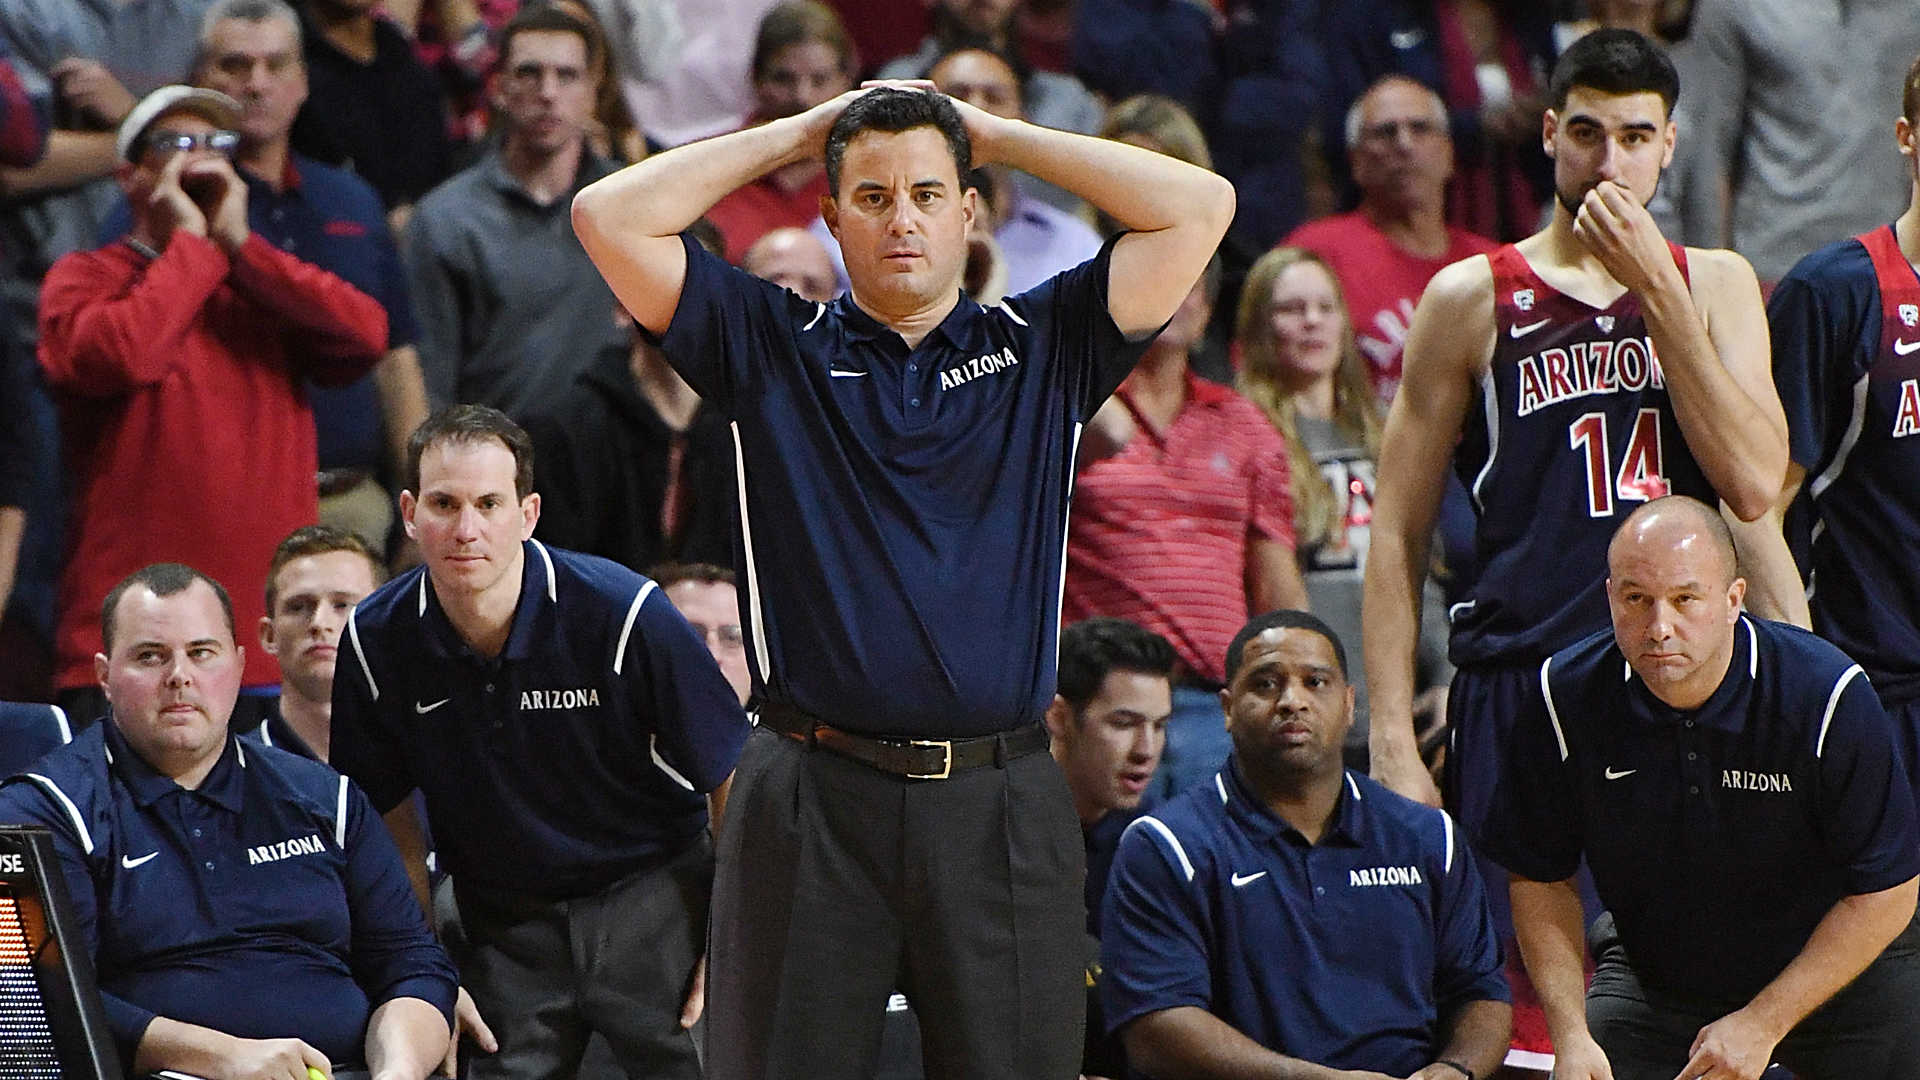 Arizona Wildcats basketball coach allegedly paid 5-star recruit $15000 for commitment